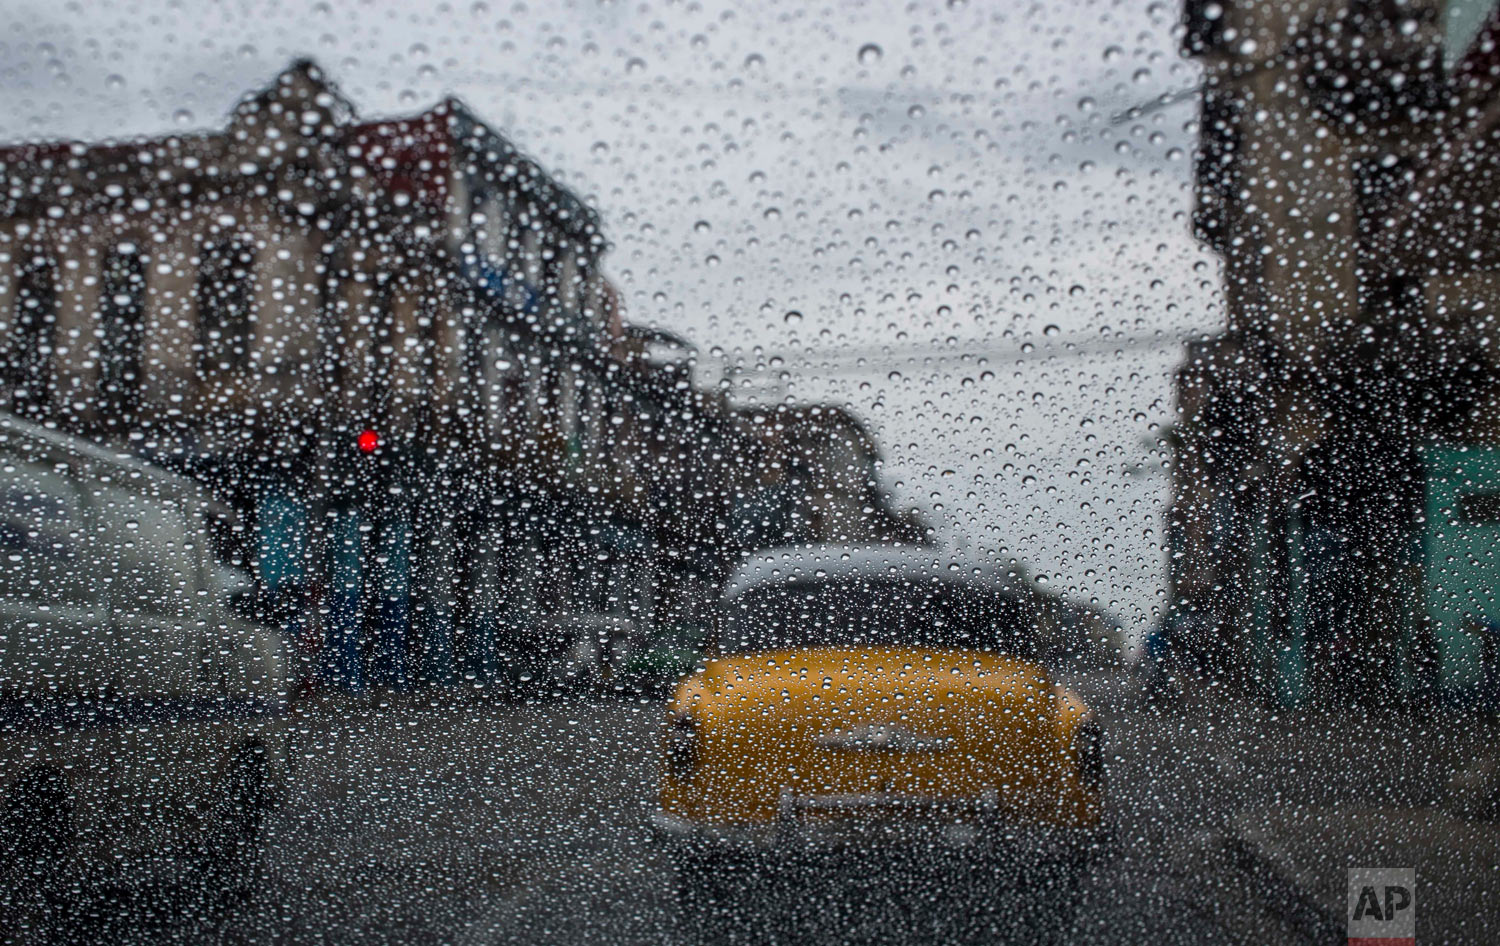 Raindrops accumulate on a car's windshield as commuters wait at a red light in Havana, Cuba, Thursday, May 24, 2018. (AP Photo/Desmond Boylan)